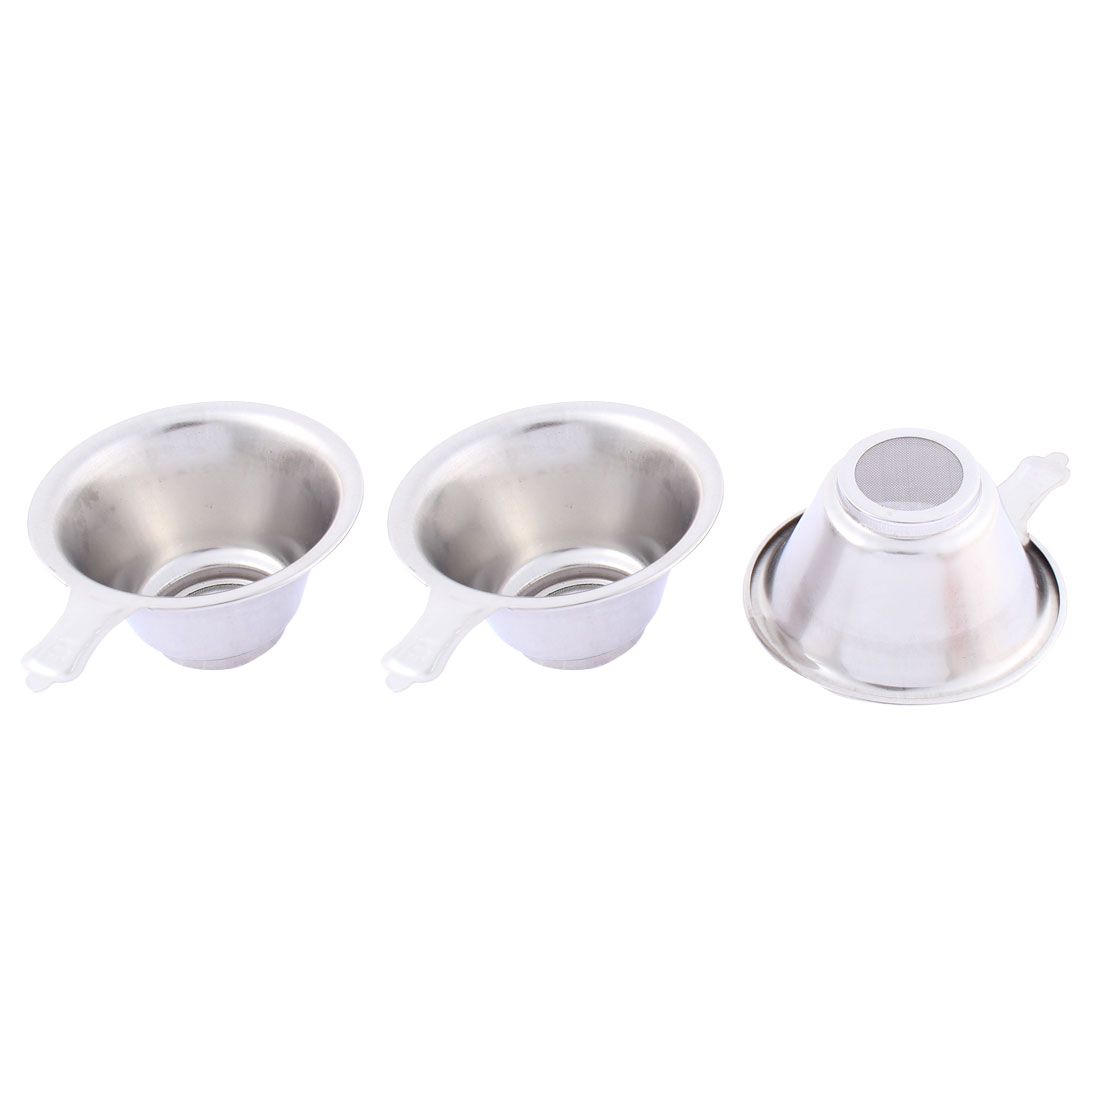 Home Stainless Steel Mesh Bottom Tea Bowl Strainer 74mm Dia 3 Pcs